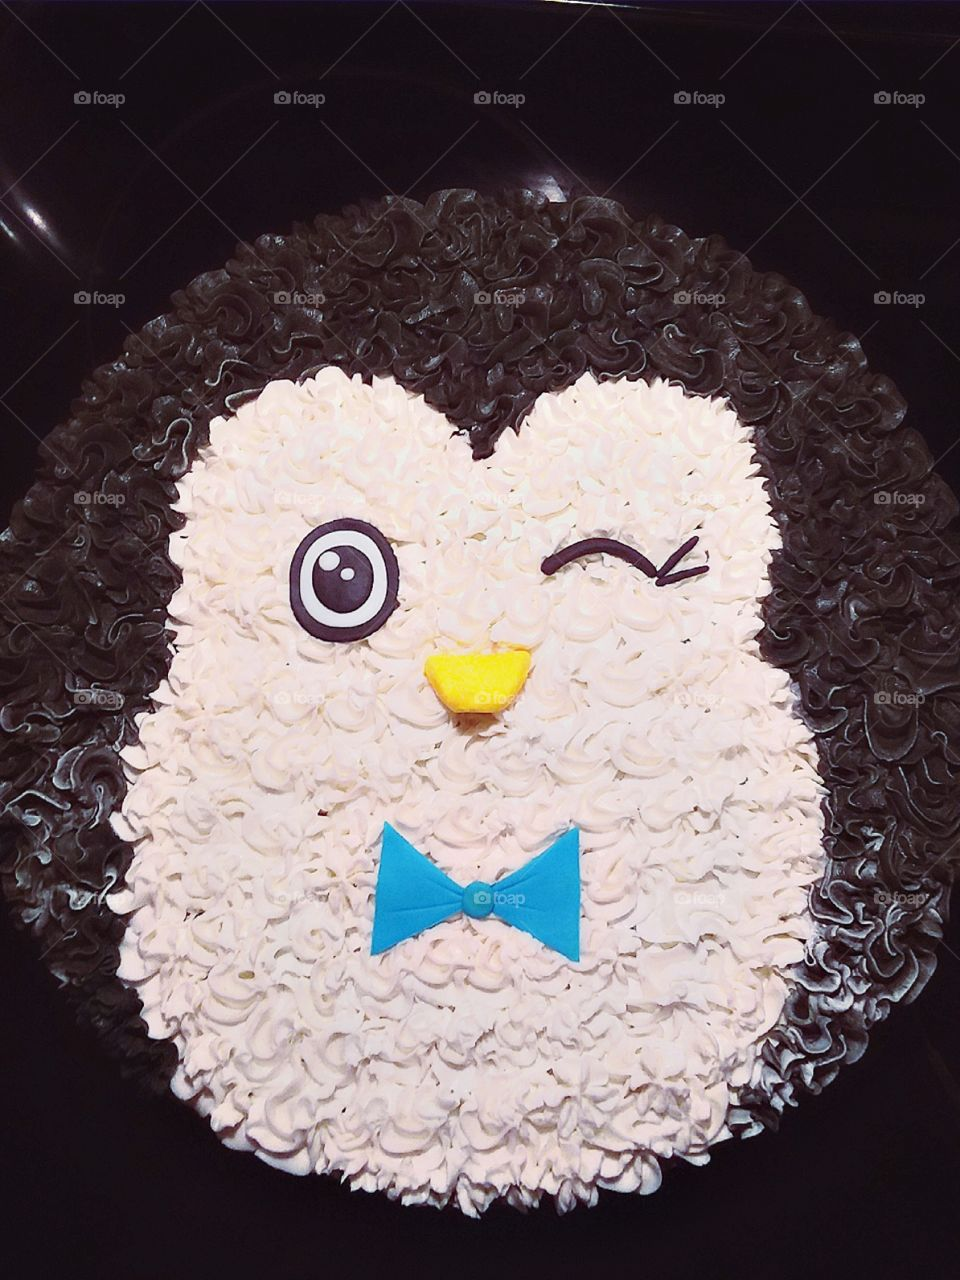 Stunning winter cookie cake decorated like a penguin winking and wearing a bowtie